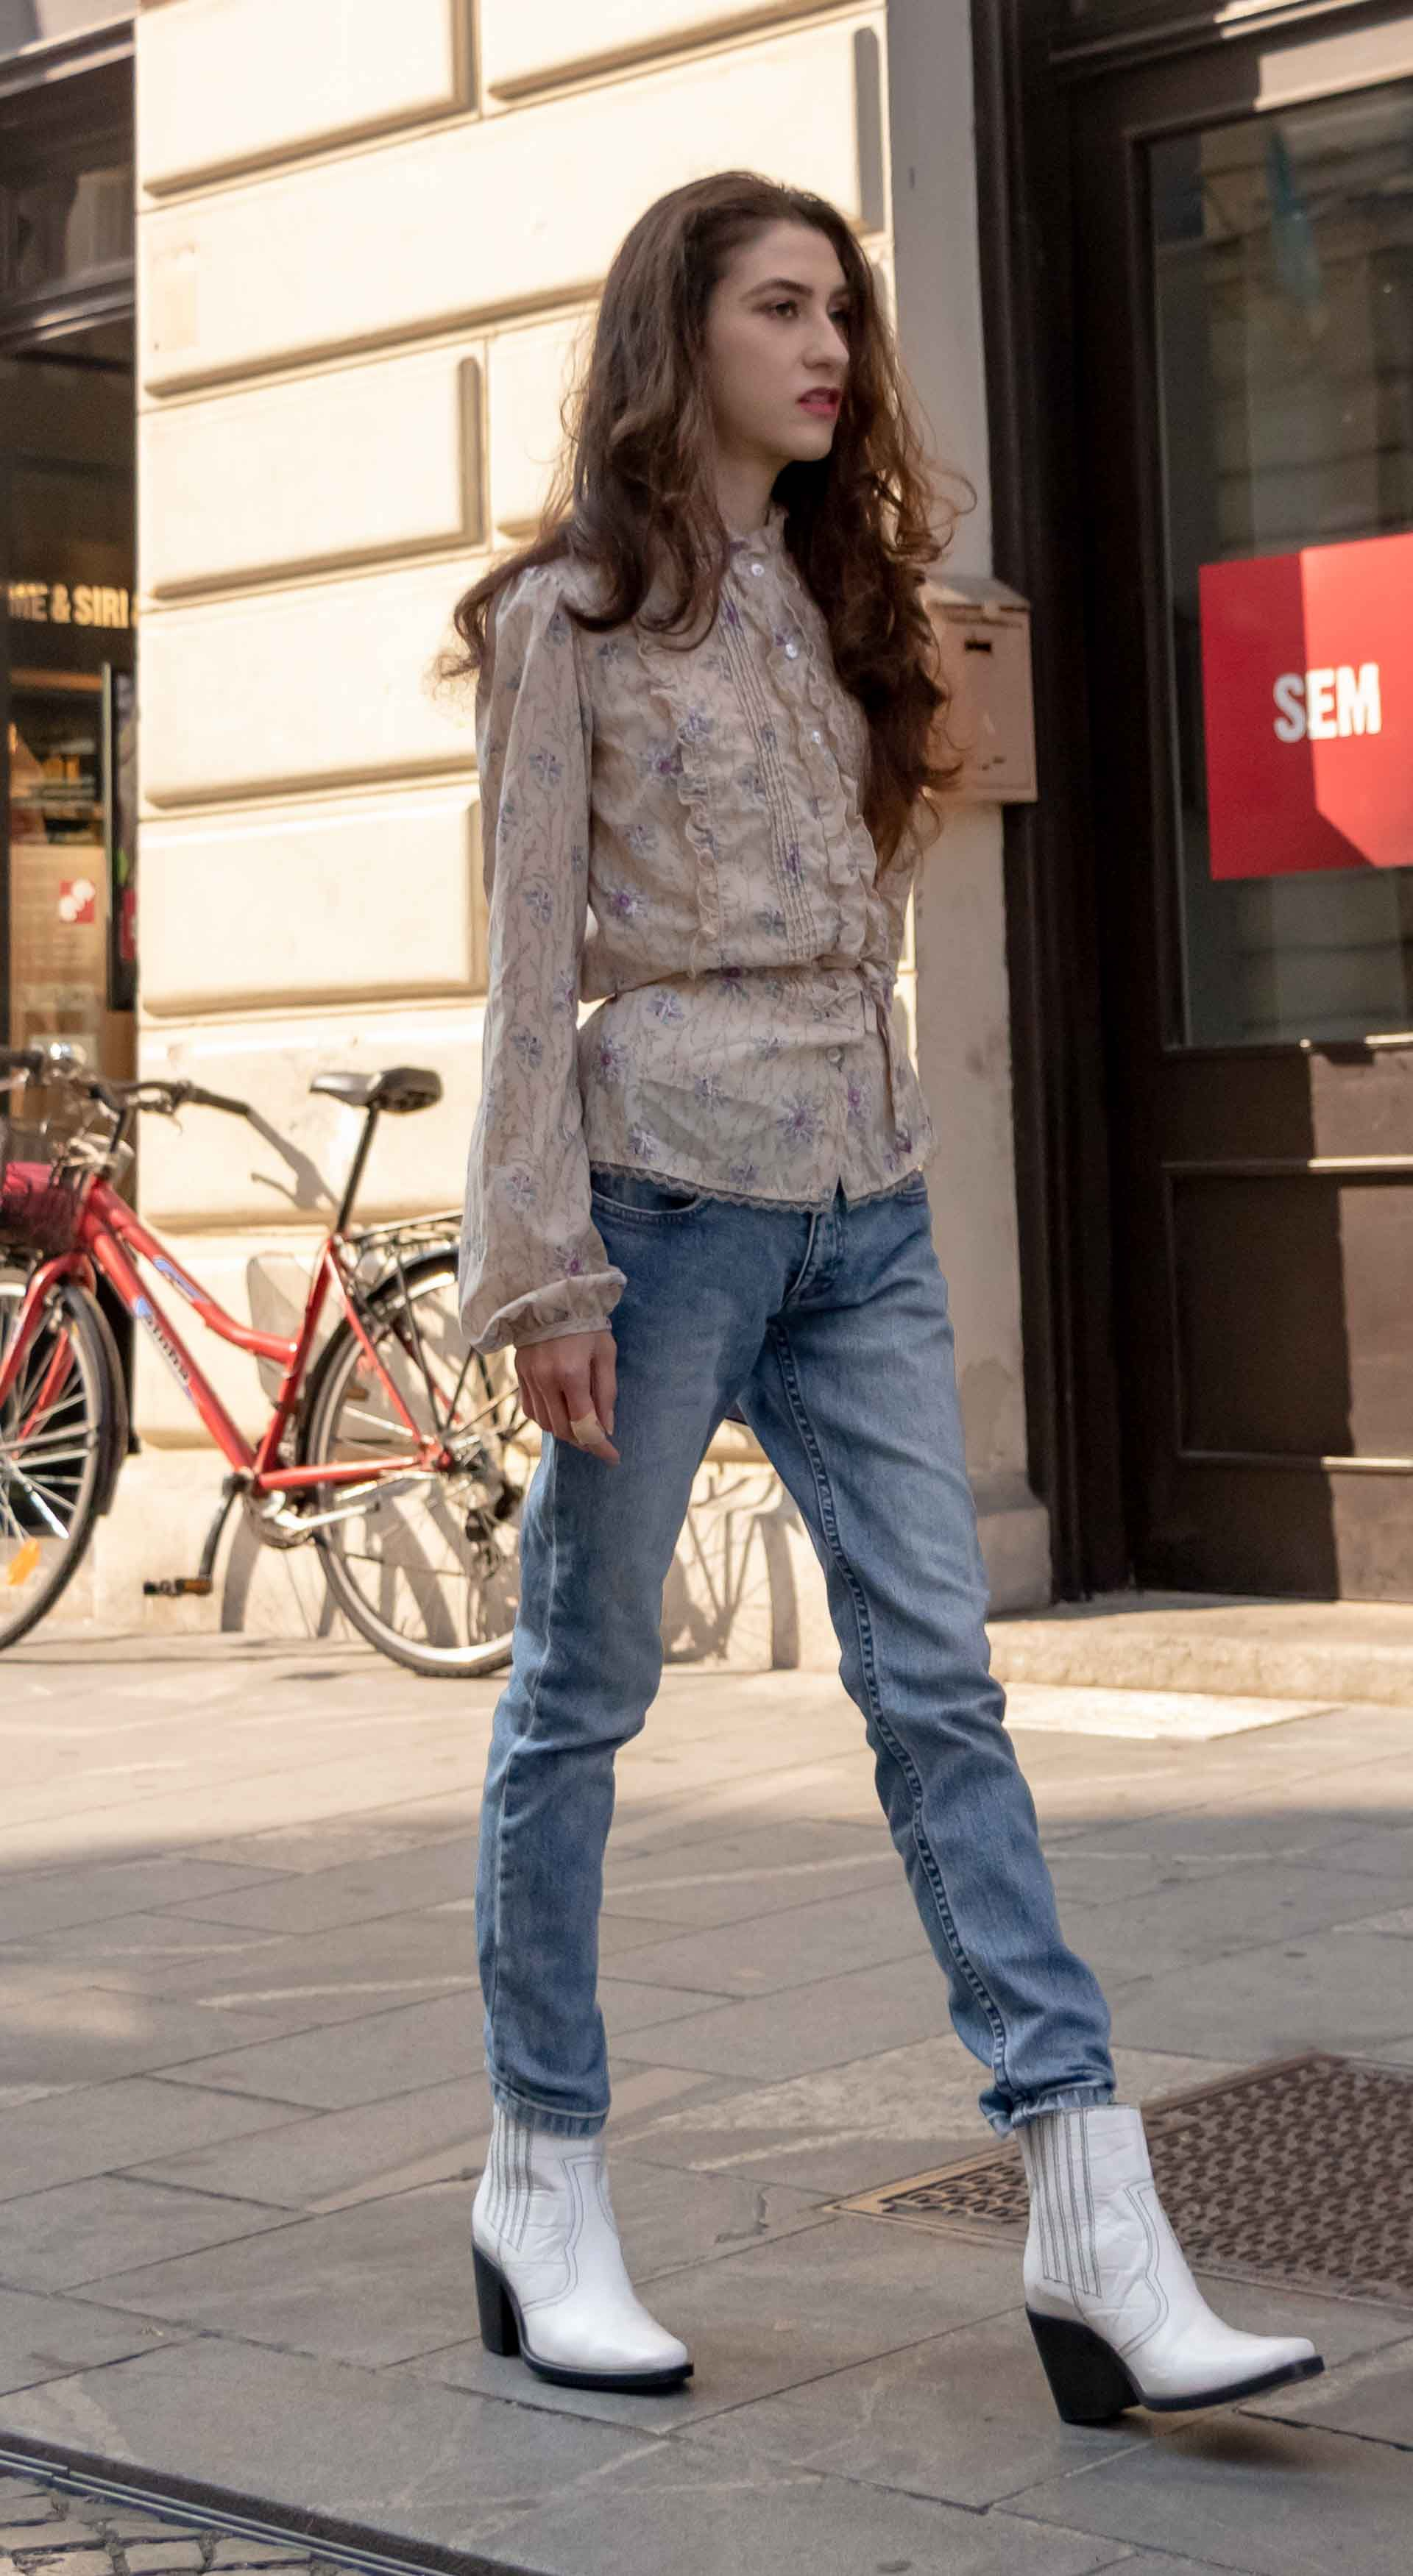 5051511a589 Beautiful Slovenian Fashion Blogger Veronika Lipar of Brunette from Wall  dressed in white Ganni Western boots